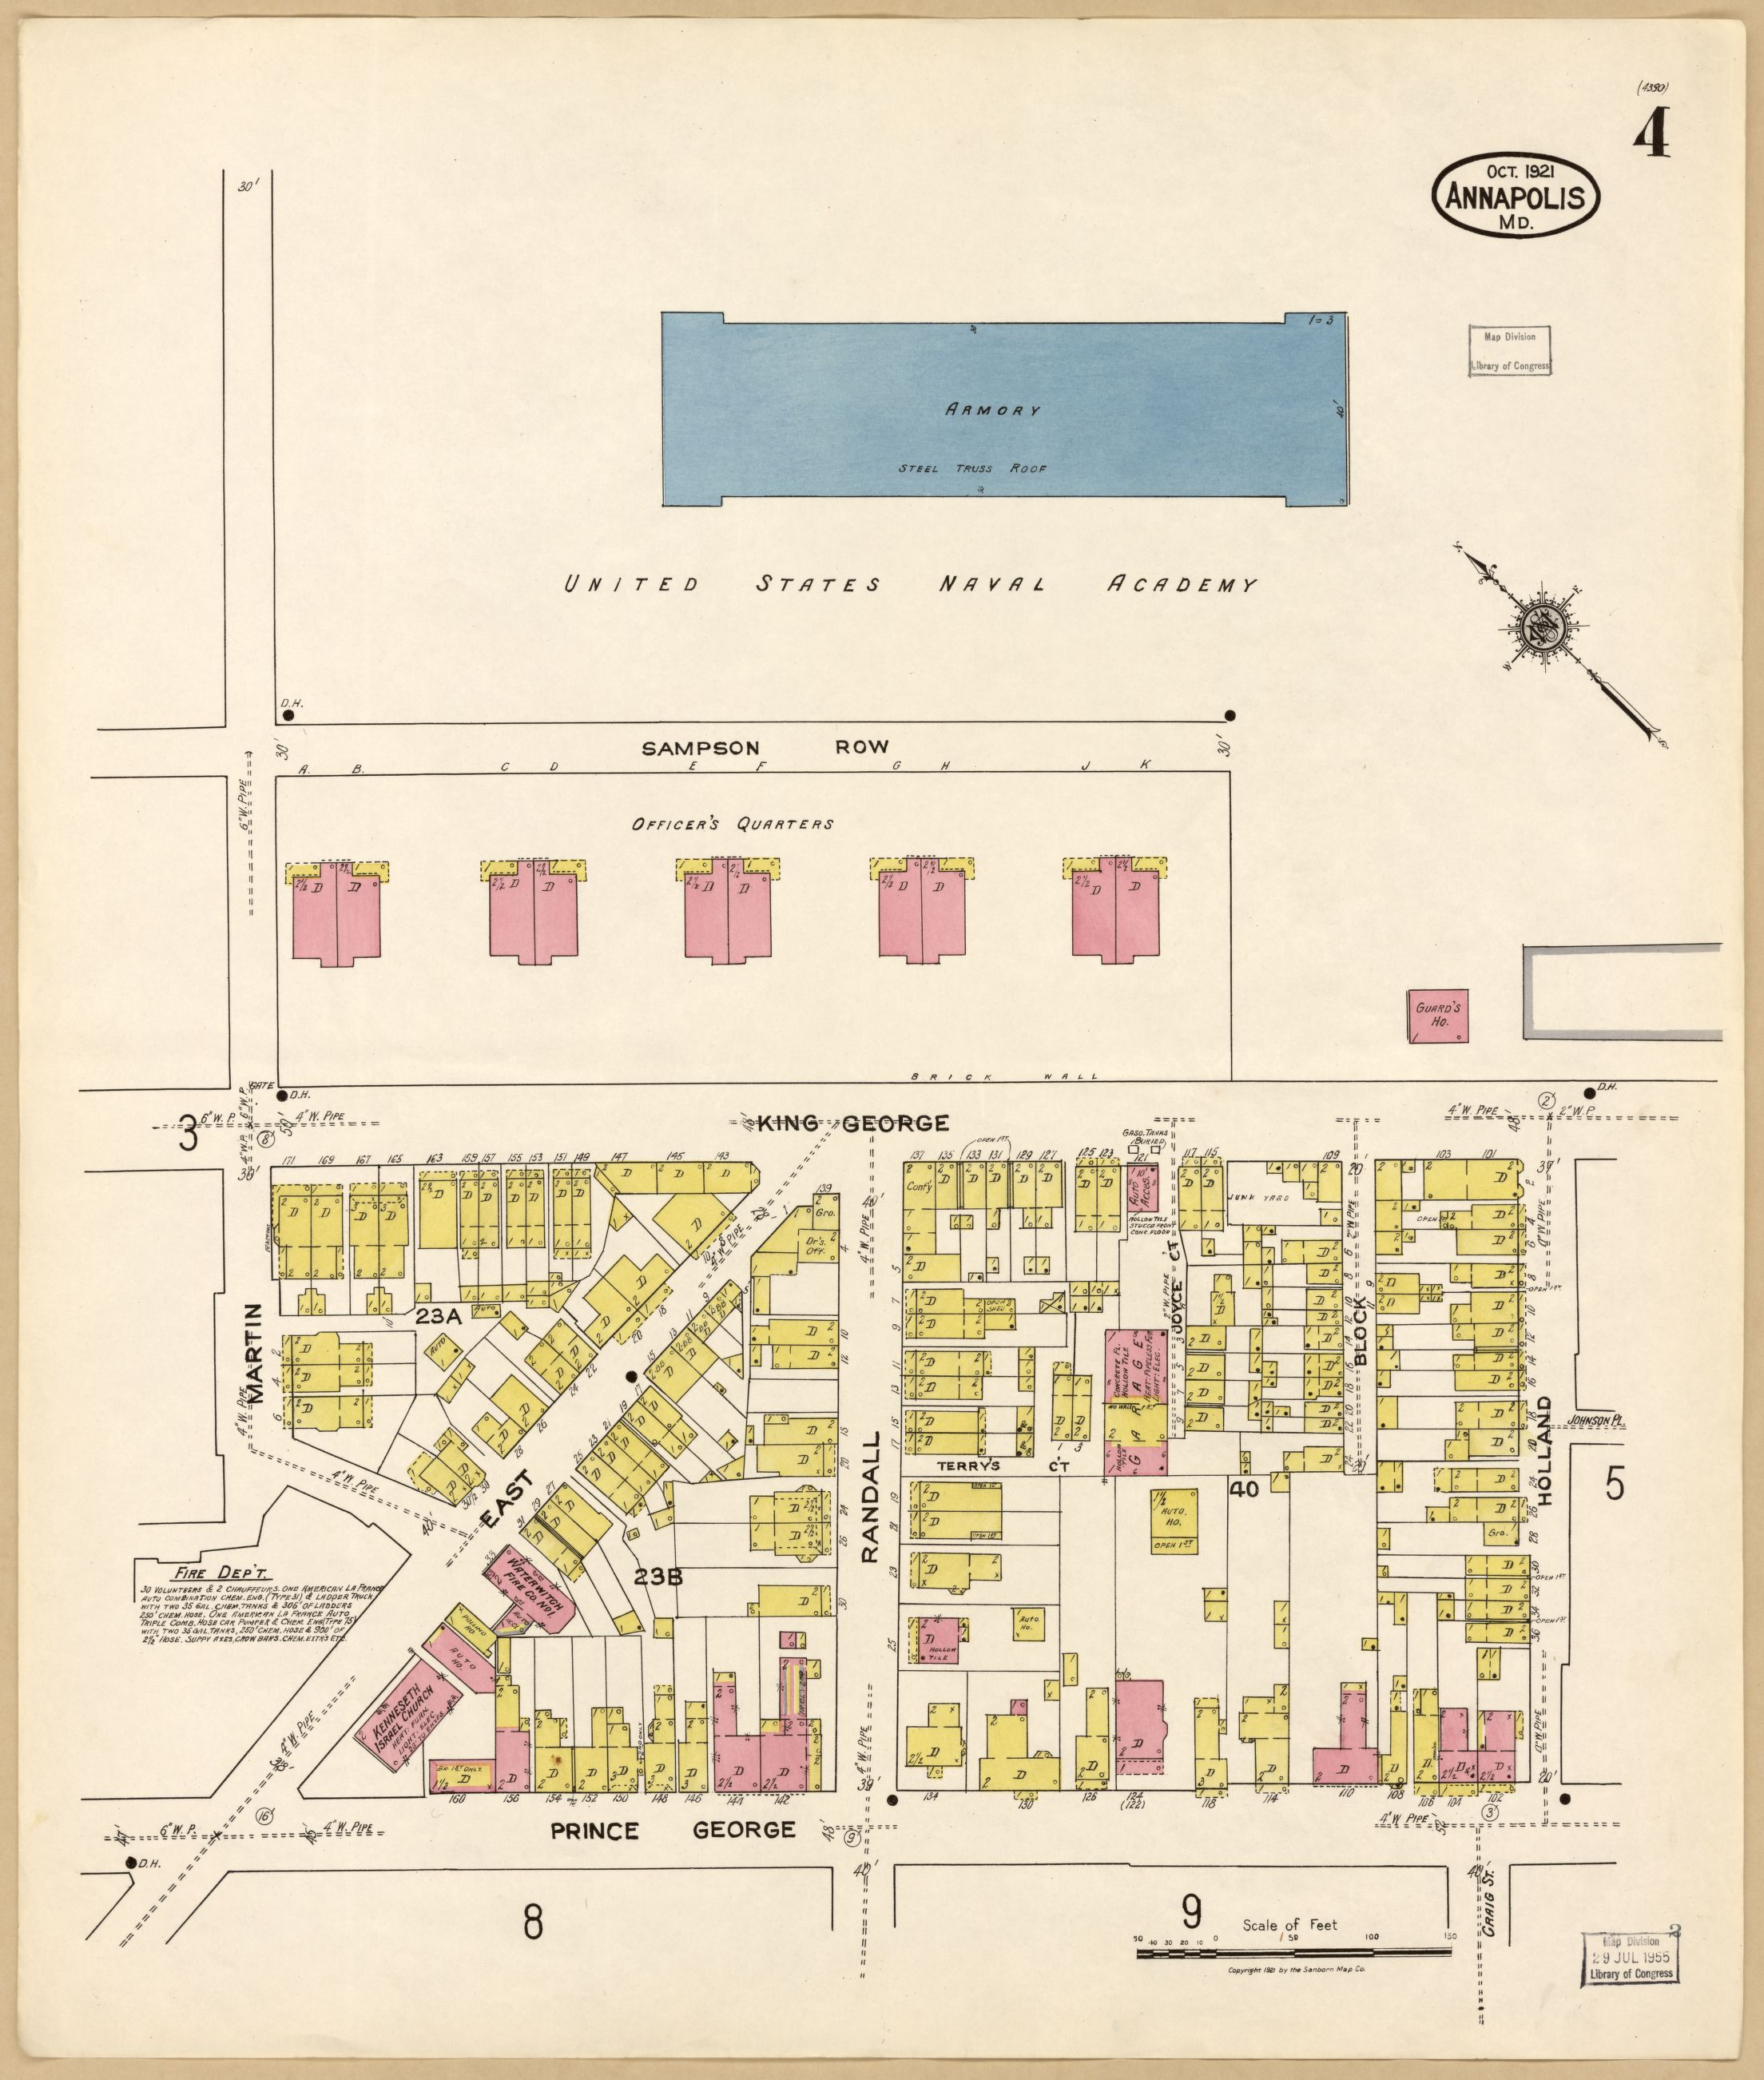 Sanborn Fire Map.Image 4 Of Sanborn Fire Insurance Map From Annapolis Anne Arundel